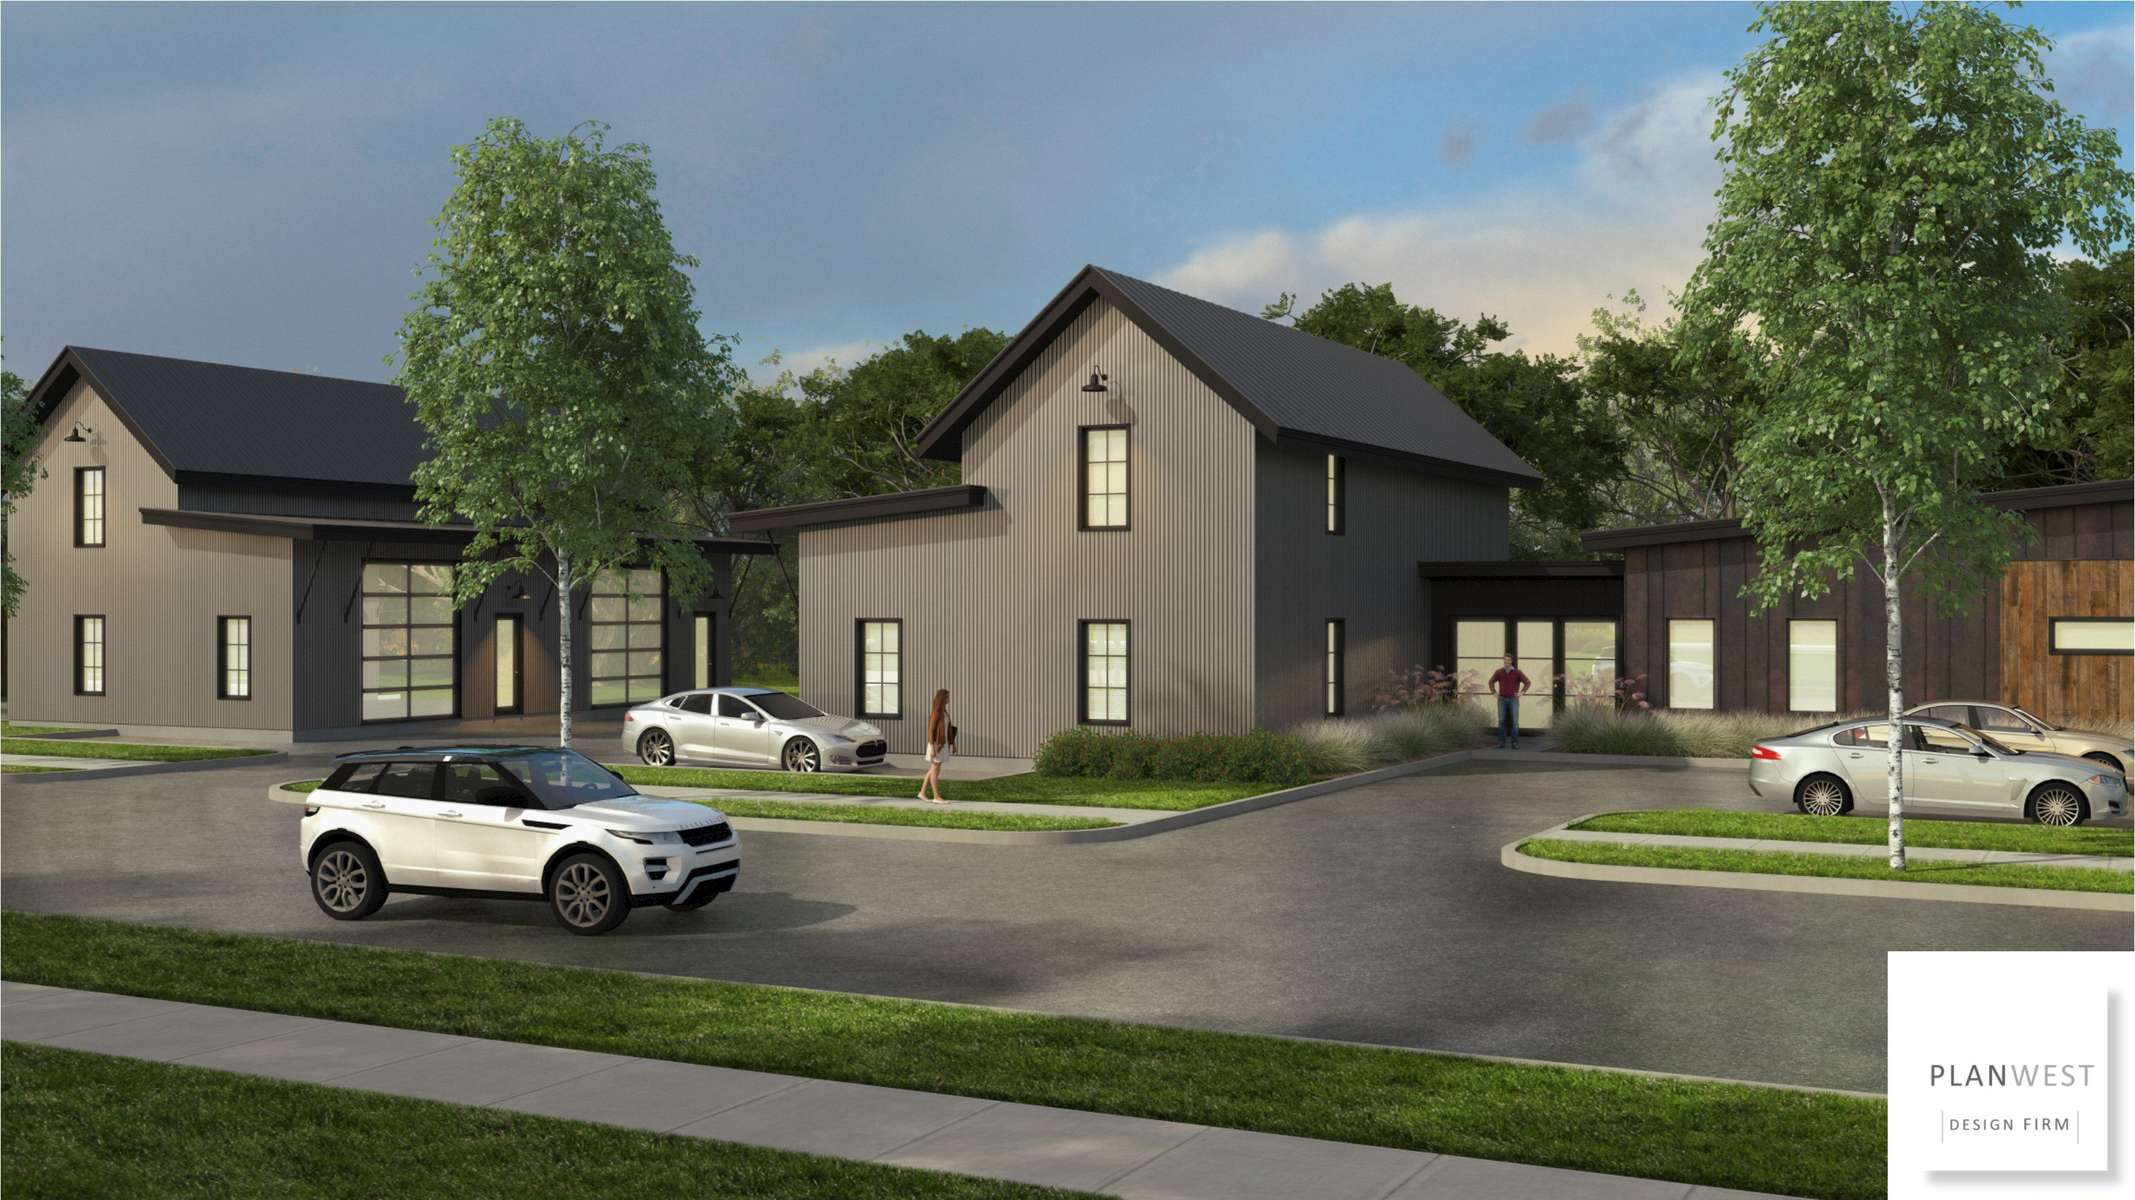 Plan-West-Design-Firm_Projects-in-process-1515